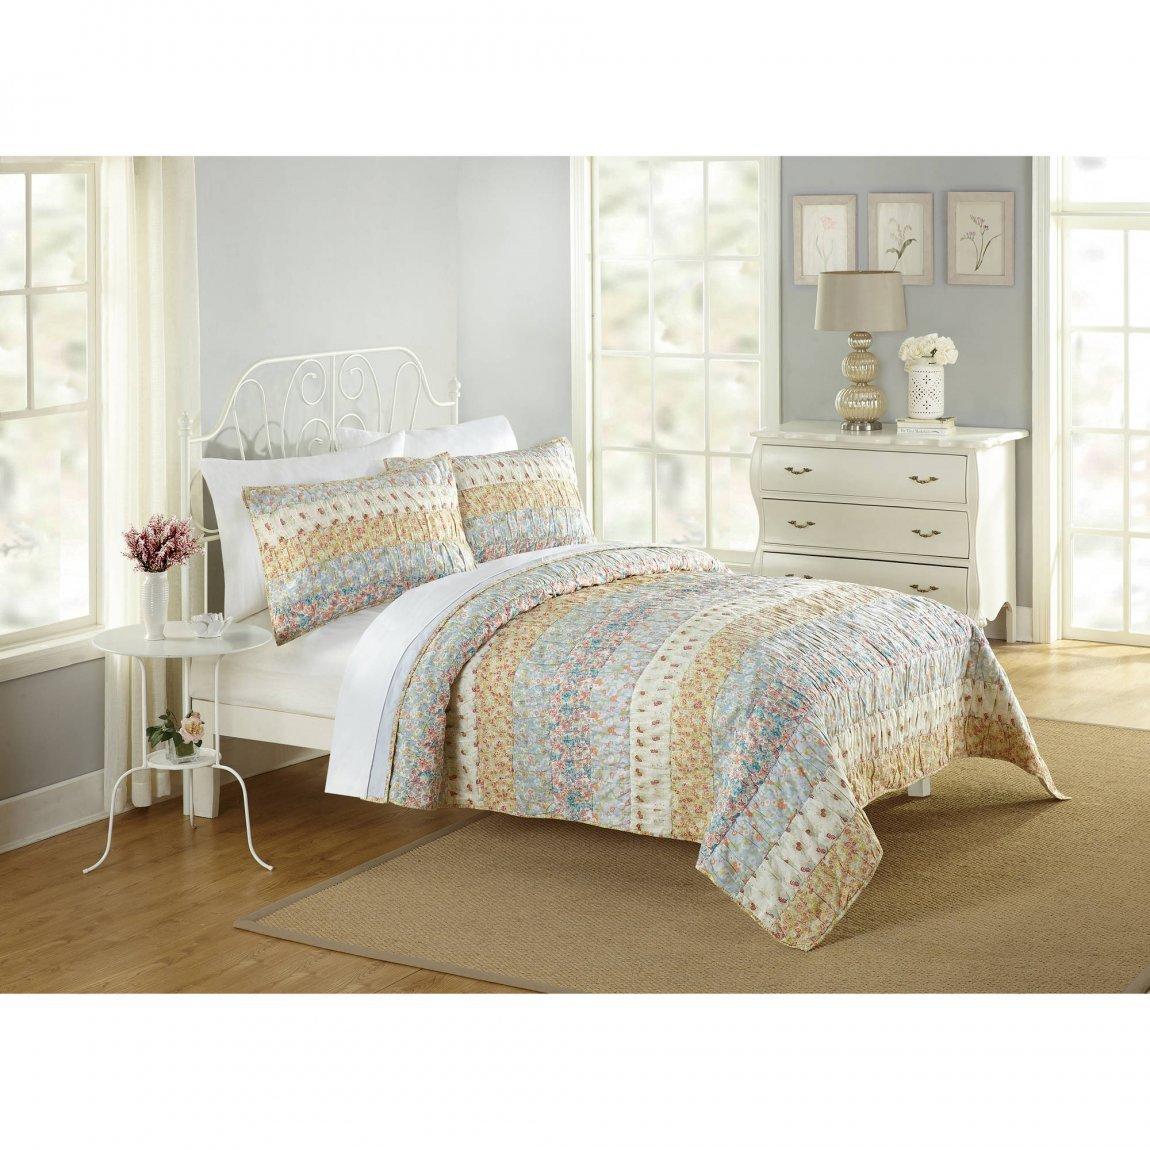 Best Bedroom Sets Columbus Ohio Front Room Furnishings With Pictures